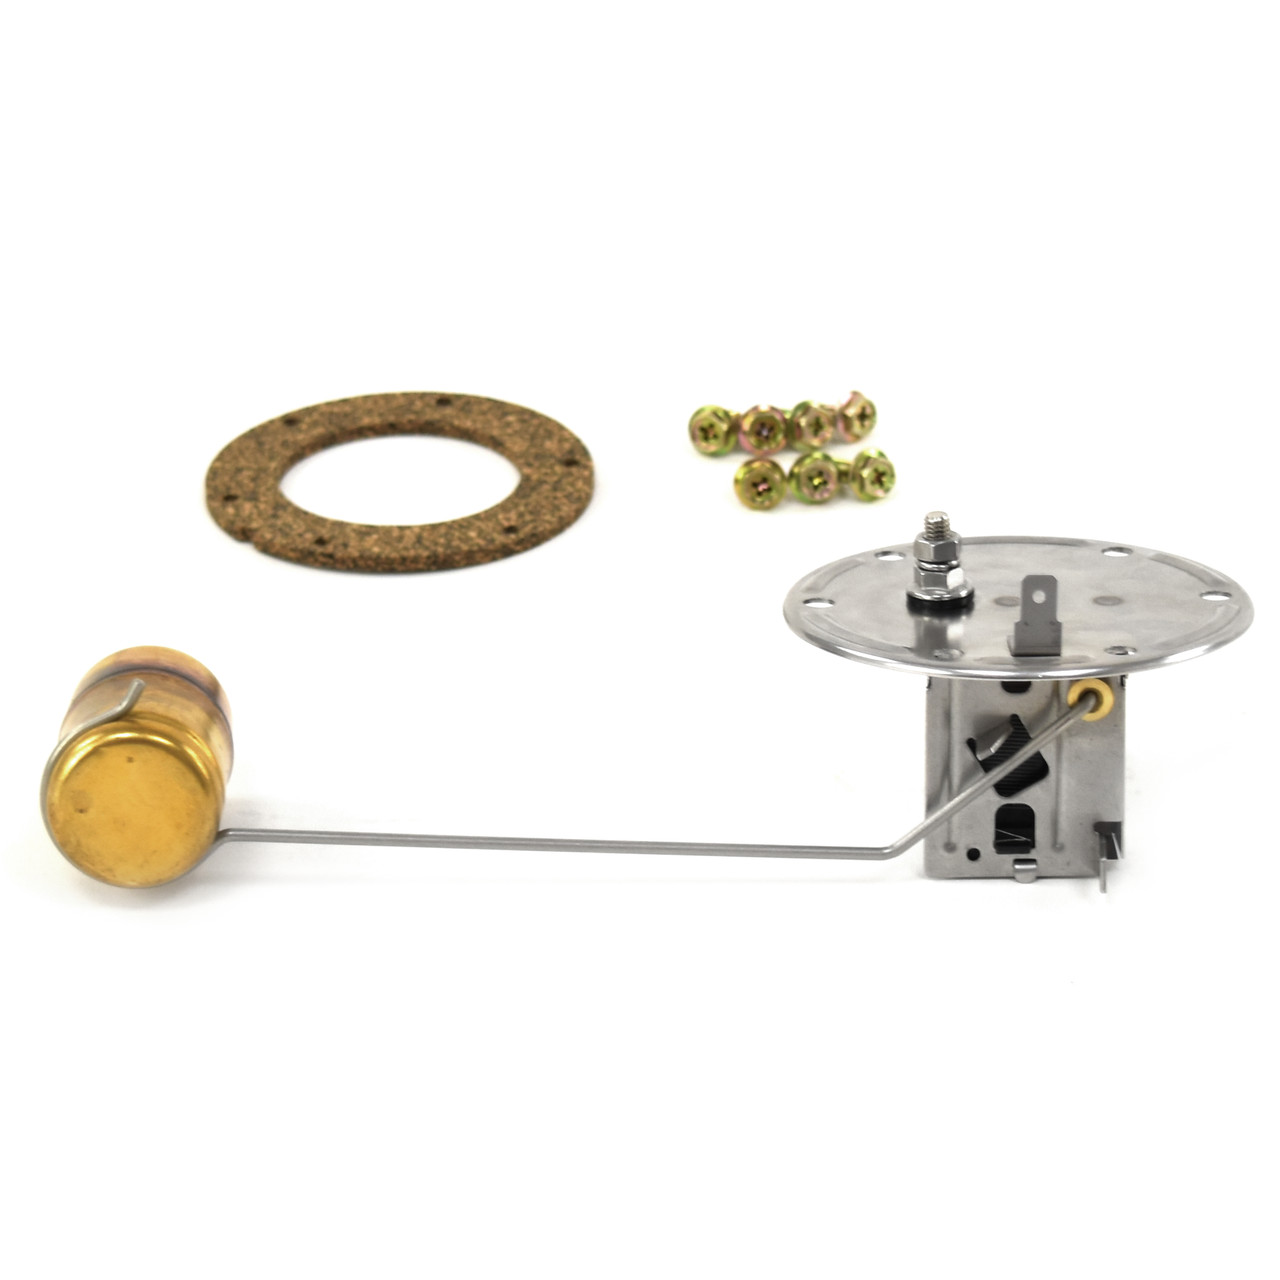 eClassics 1936-1947 Ford 3/4 Ton Pickup Stainless Steel Fuel Sending Unit For Aftermarket Gauges 33-240 Ohms